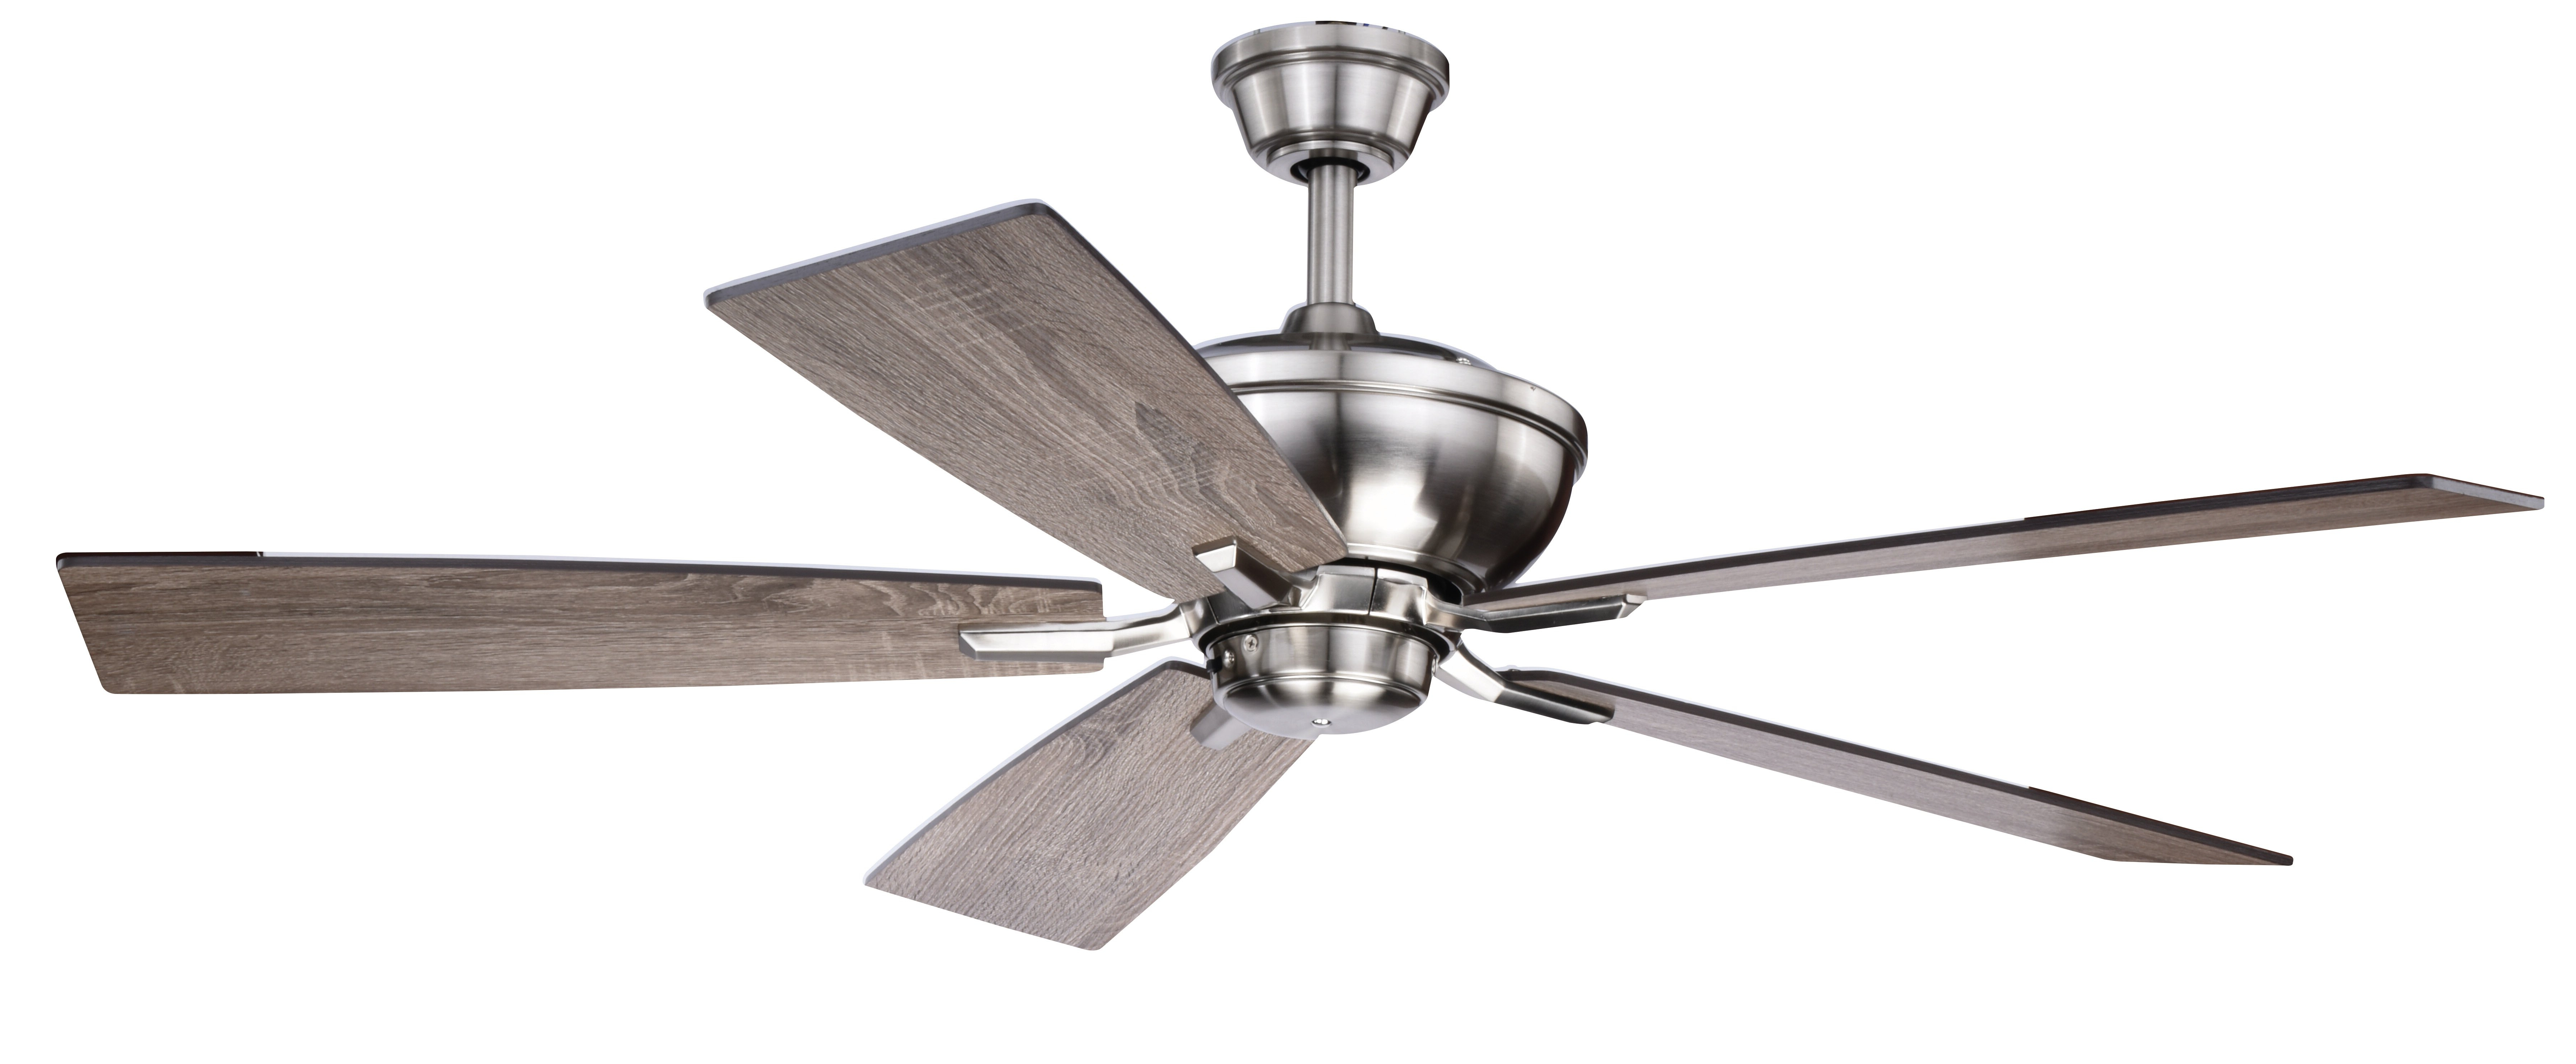 "Recent Clybourn 5 Blade Ceiling Fans In 52"" Hirsch 5 Blade Ceiling Fan With Remote, Light Kit Included (View 5 of 20)"